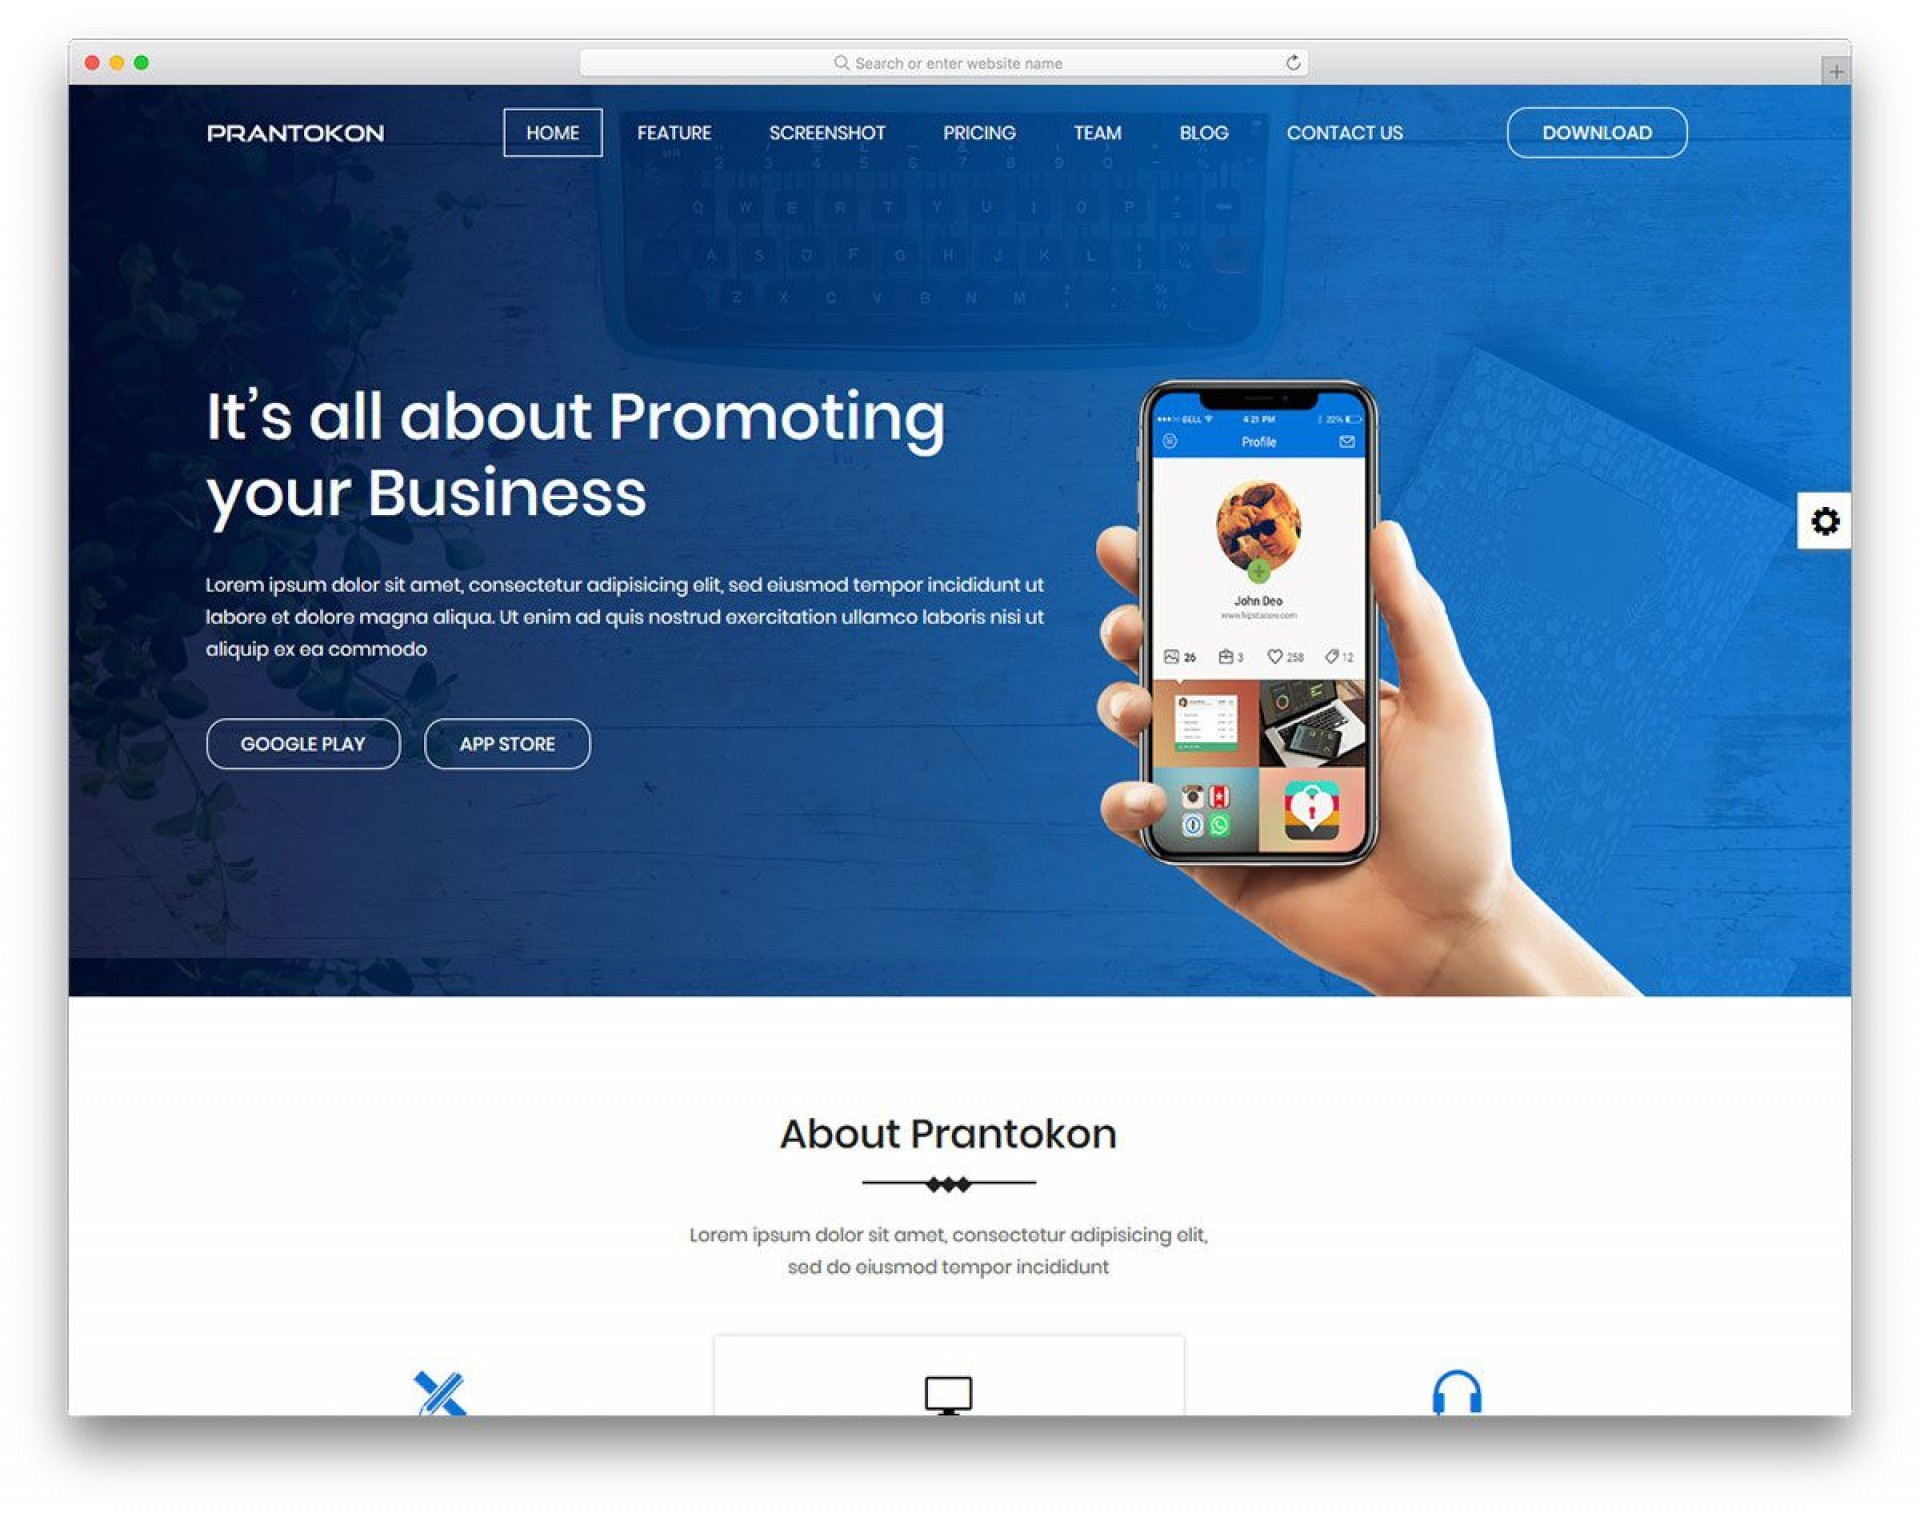 007 Archaicawful Free Responsive Landing Page Template High Resolution  Templates Pardot Html51920